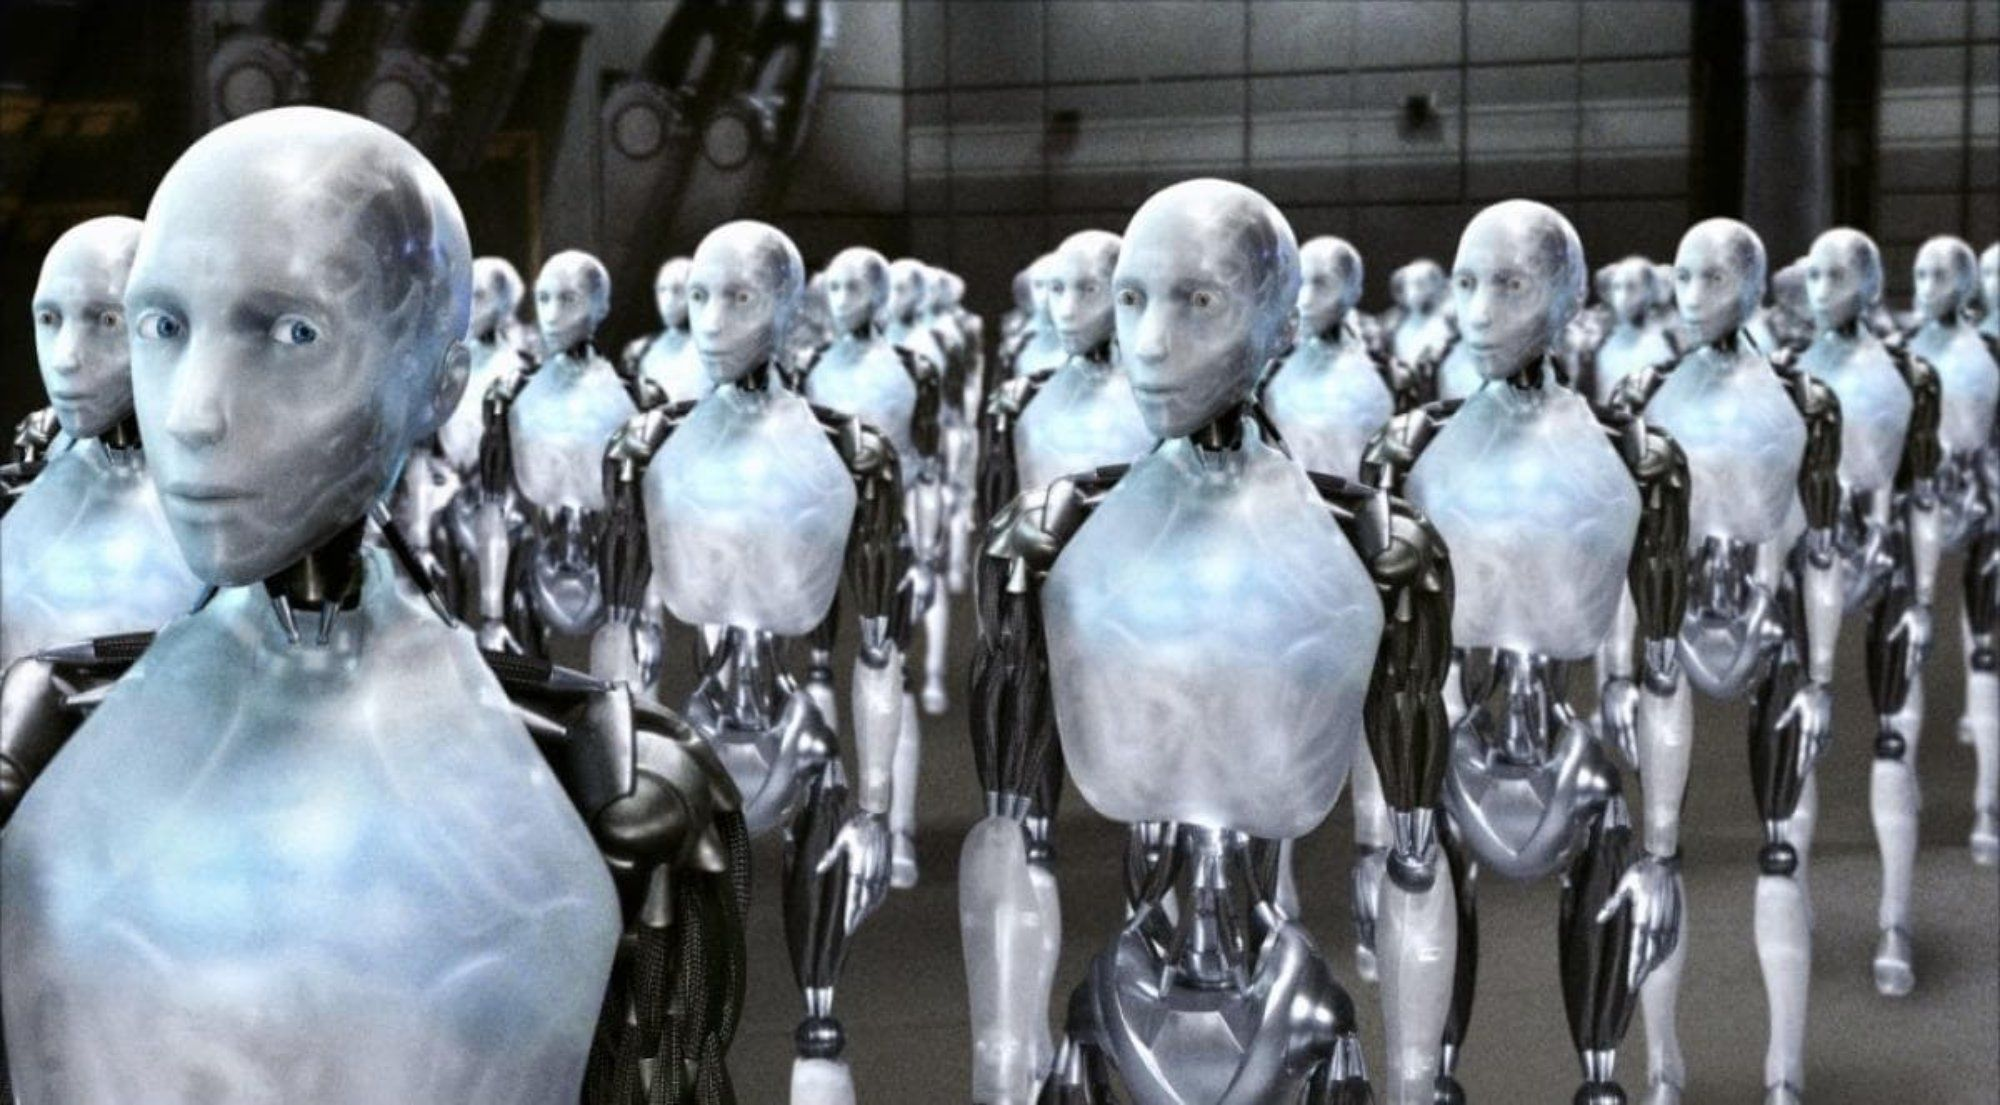 A Scene From the 2004 Science Fiction Film, 'I,Robot'